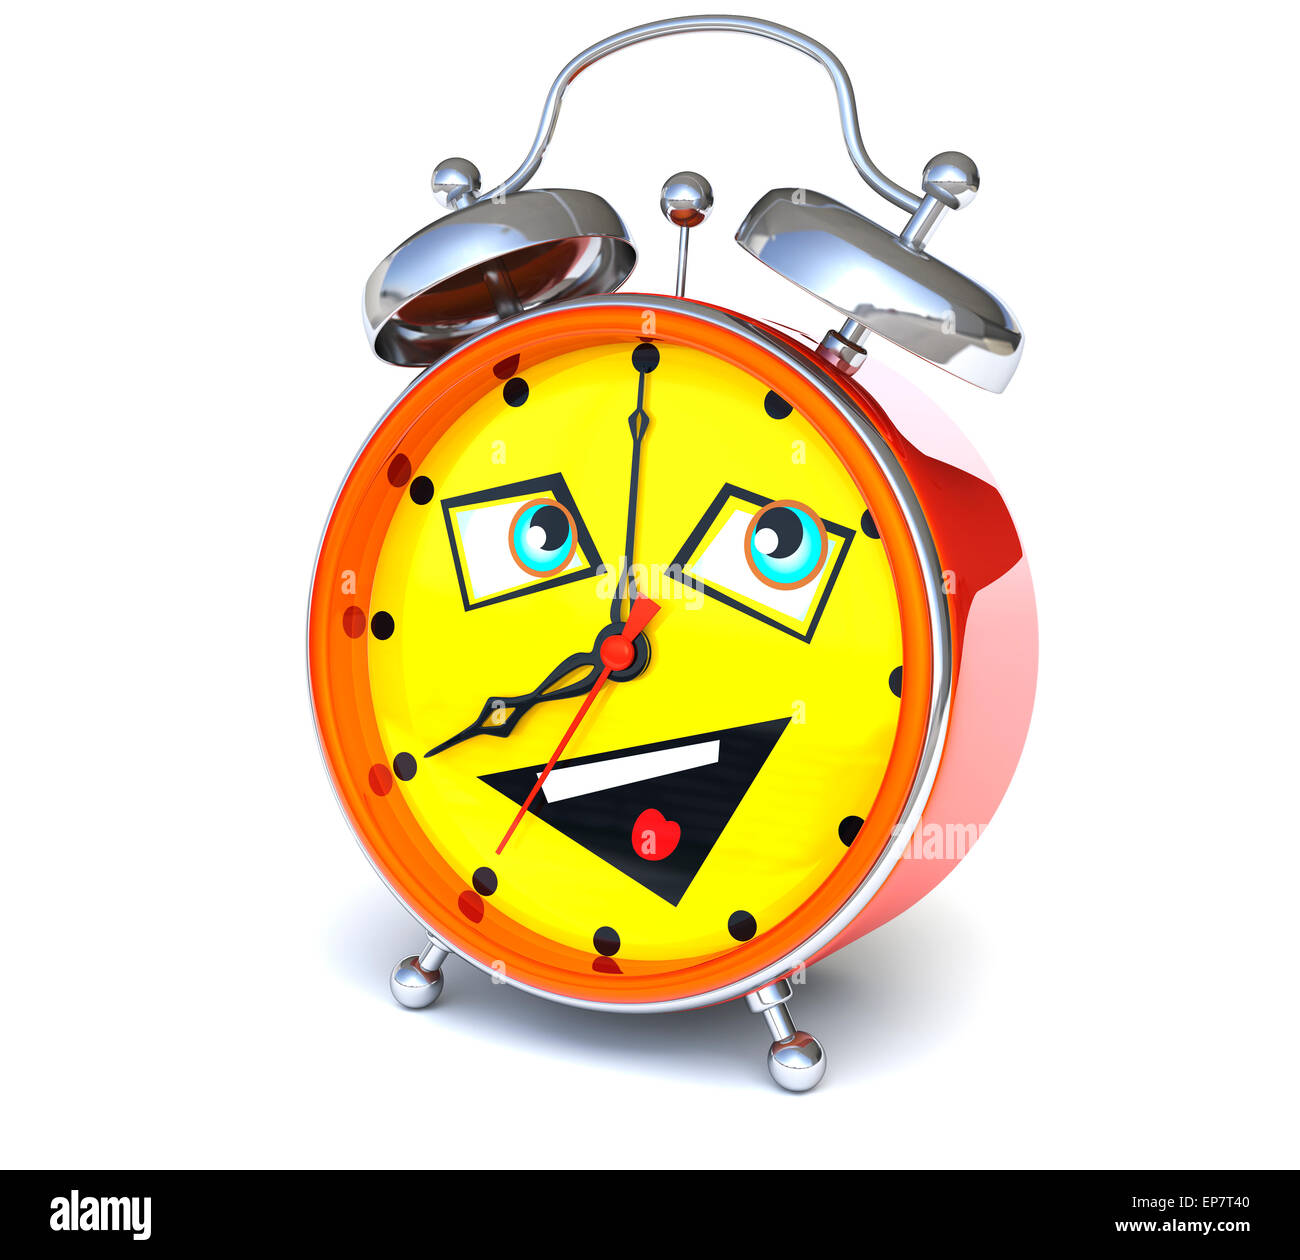 Alarm clock with smiley face - Stock Image